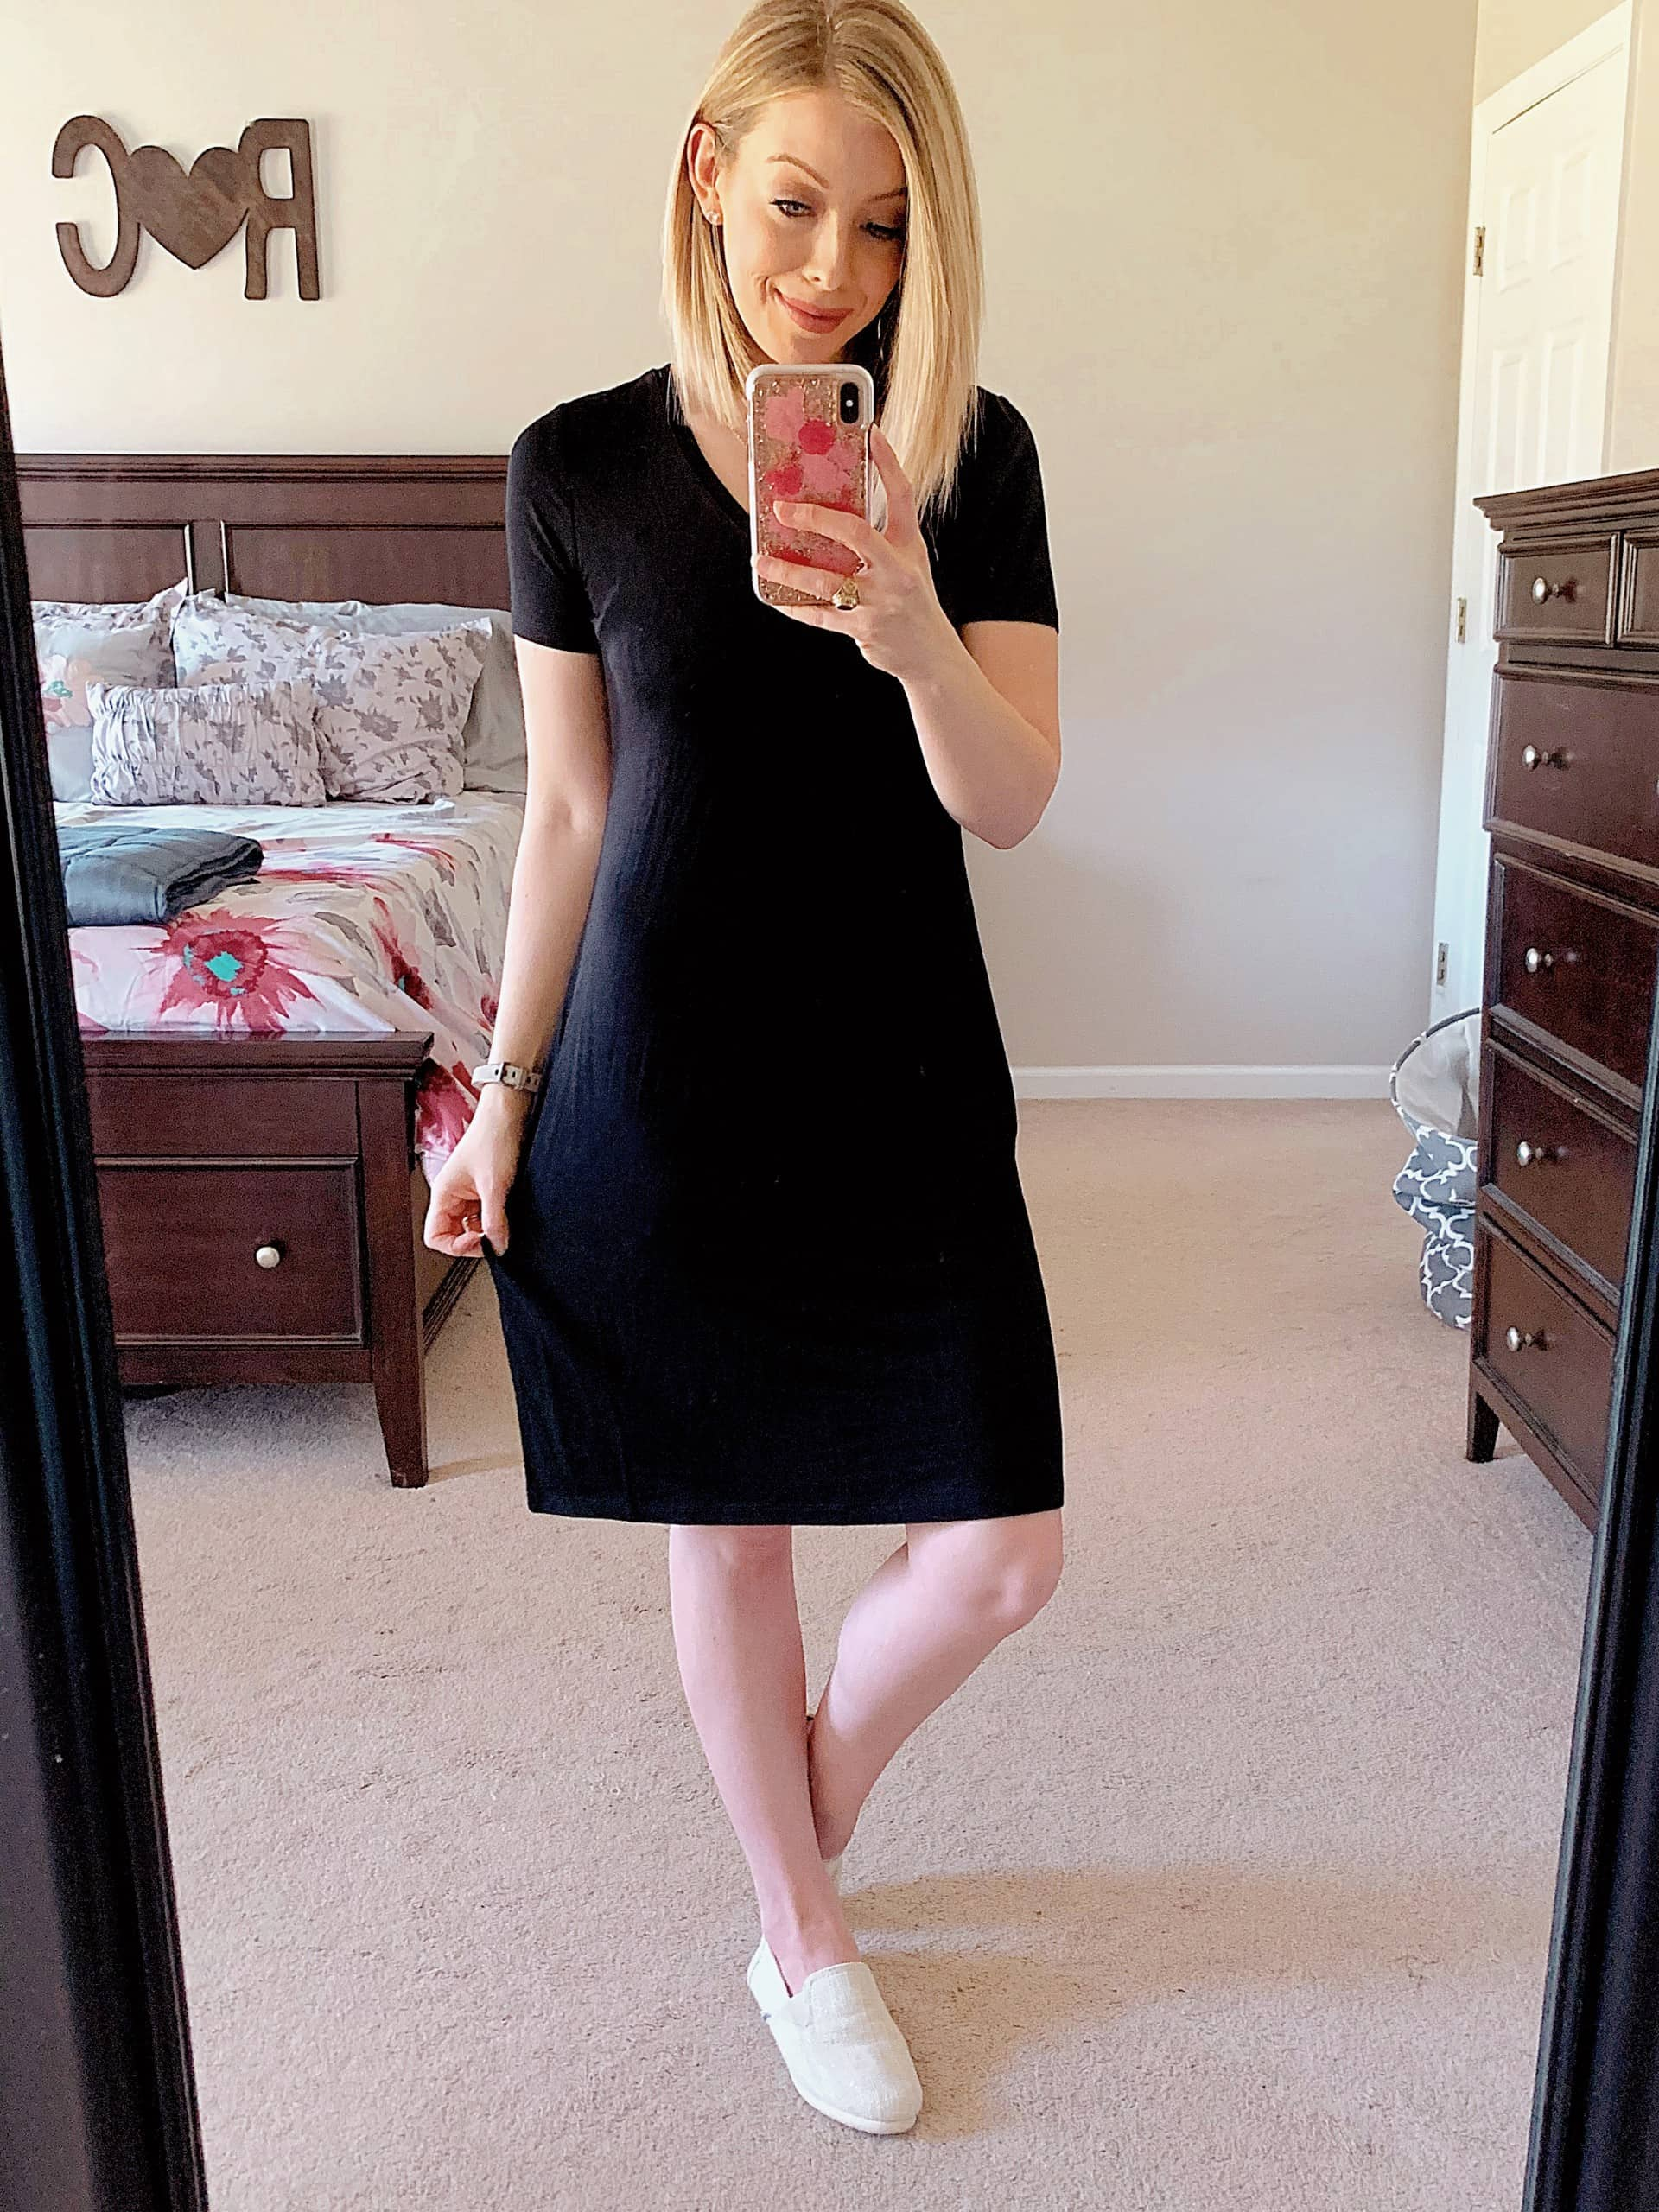 Need Amazon clothing recommendations? Check out my Affordable Amazon Fashion Haul with affordable and cute dresses, tops, pants, t-shirts, and casual outfits you'll love for transitioning to spring and summer. #amazonhaul #amazonfashion #springfashion #affordablefashion